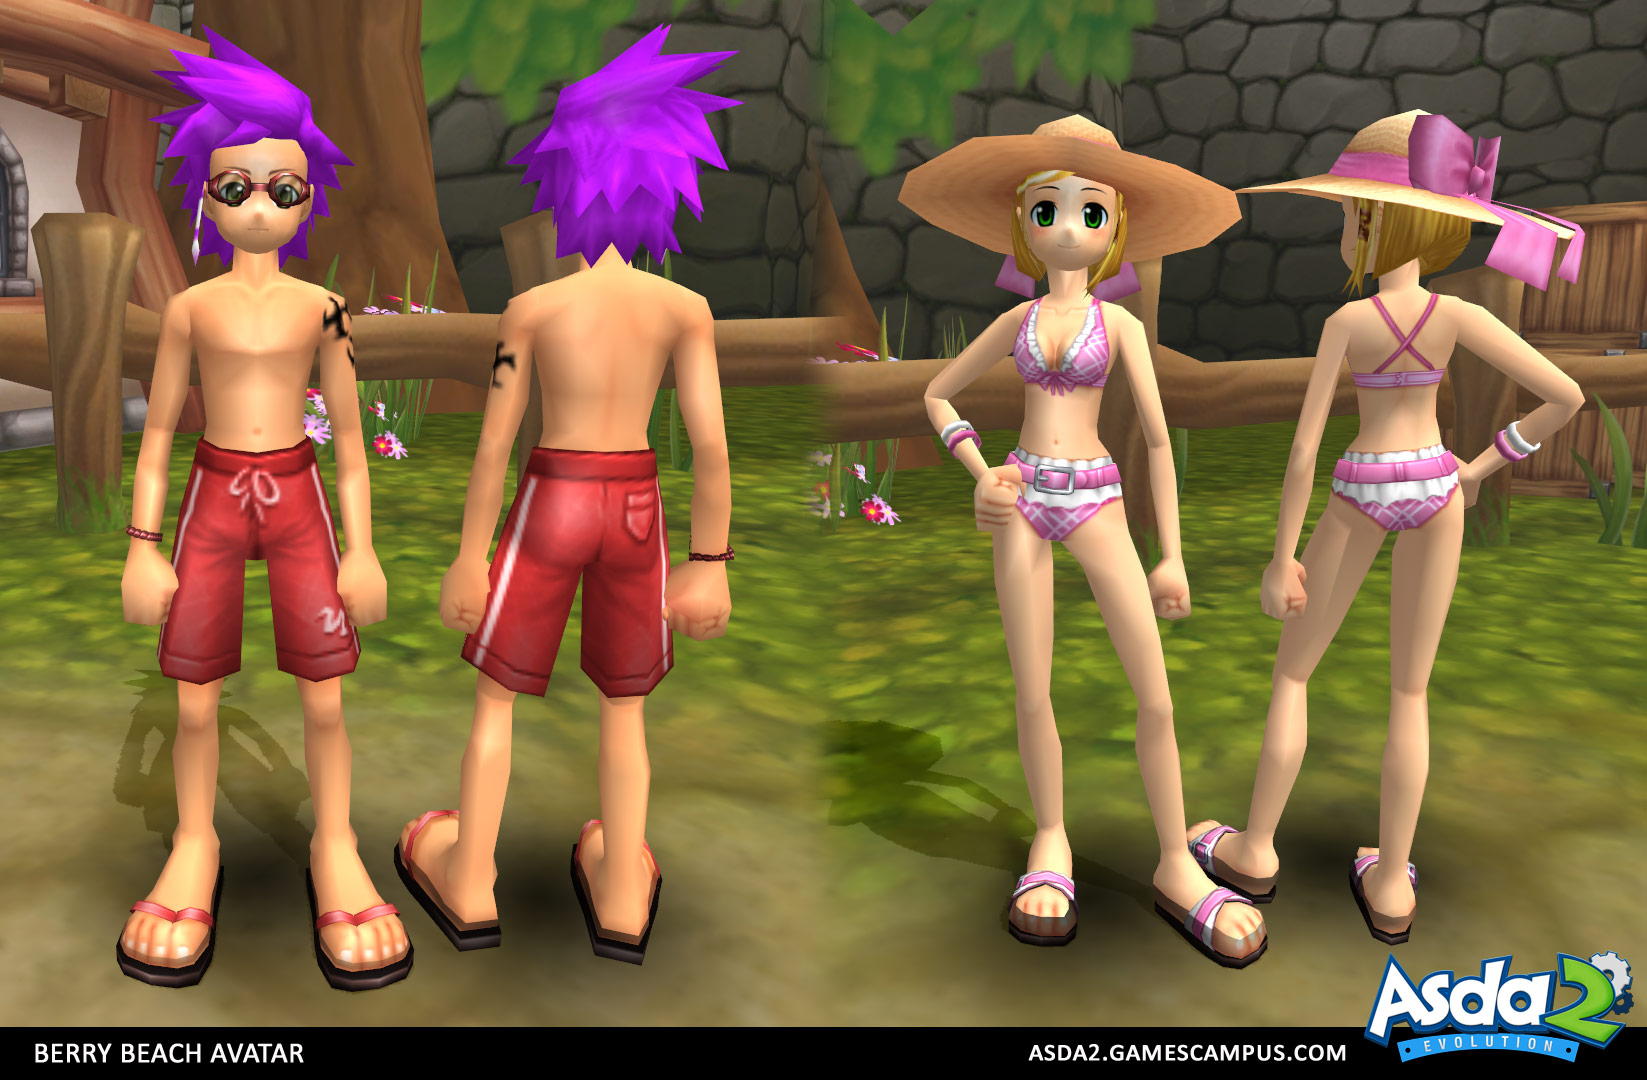 Best Anime MMORPG - Asda 2 - Berry Beach Set